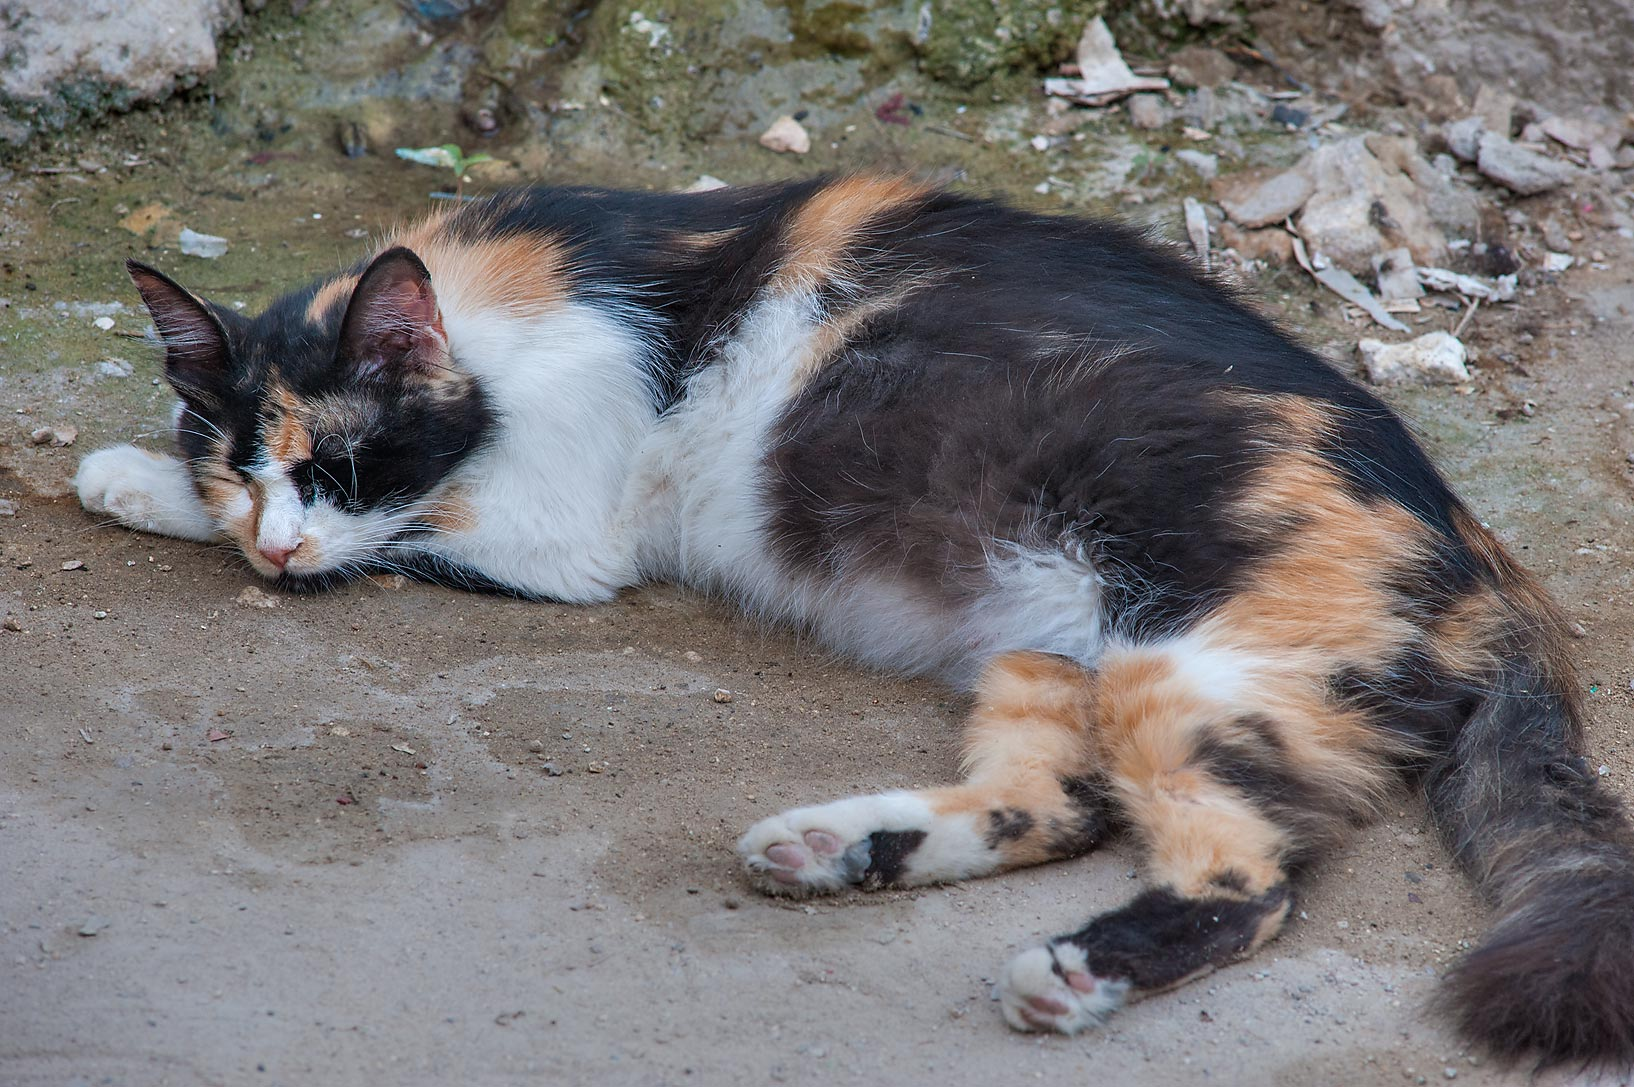 Relaxed calico cat near Abdullah Bin Thani St. in Musheirib area. Doha, Qatar